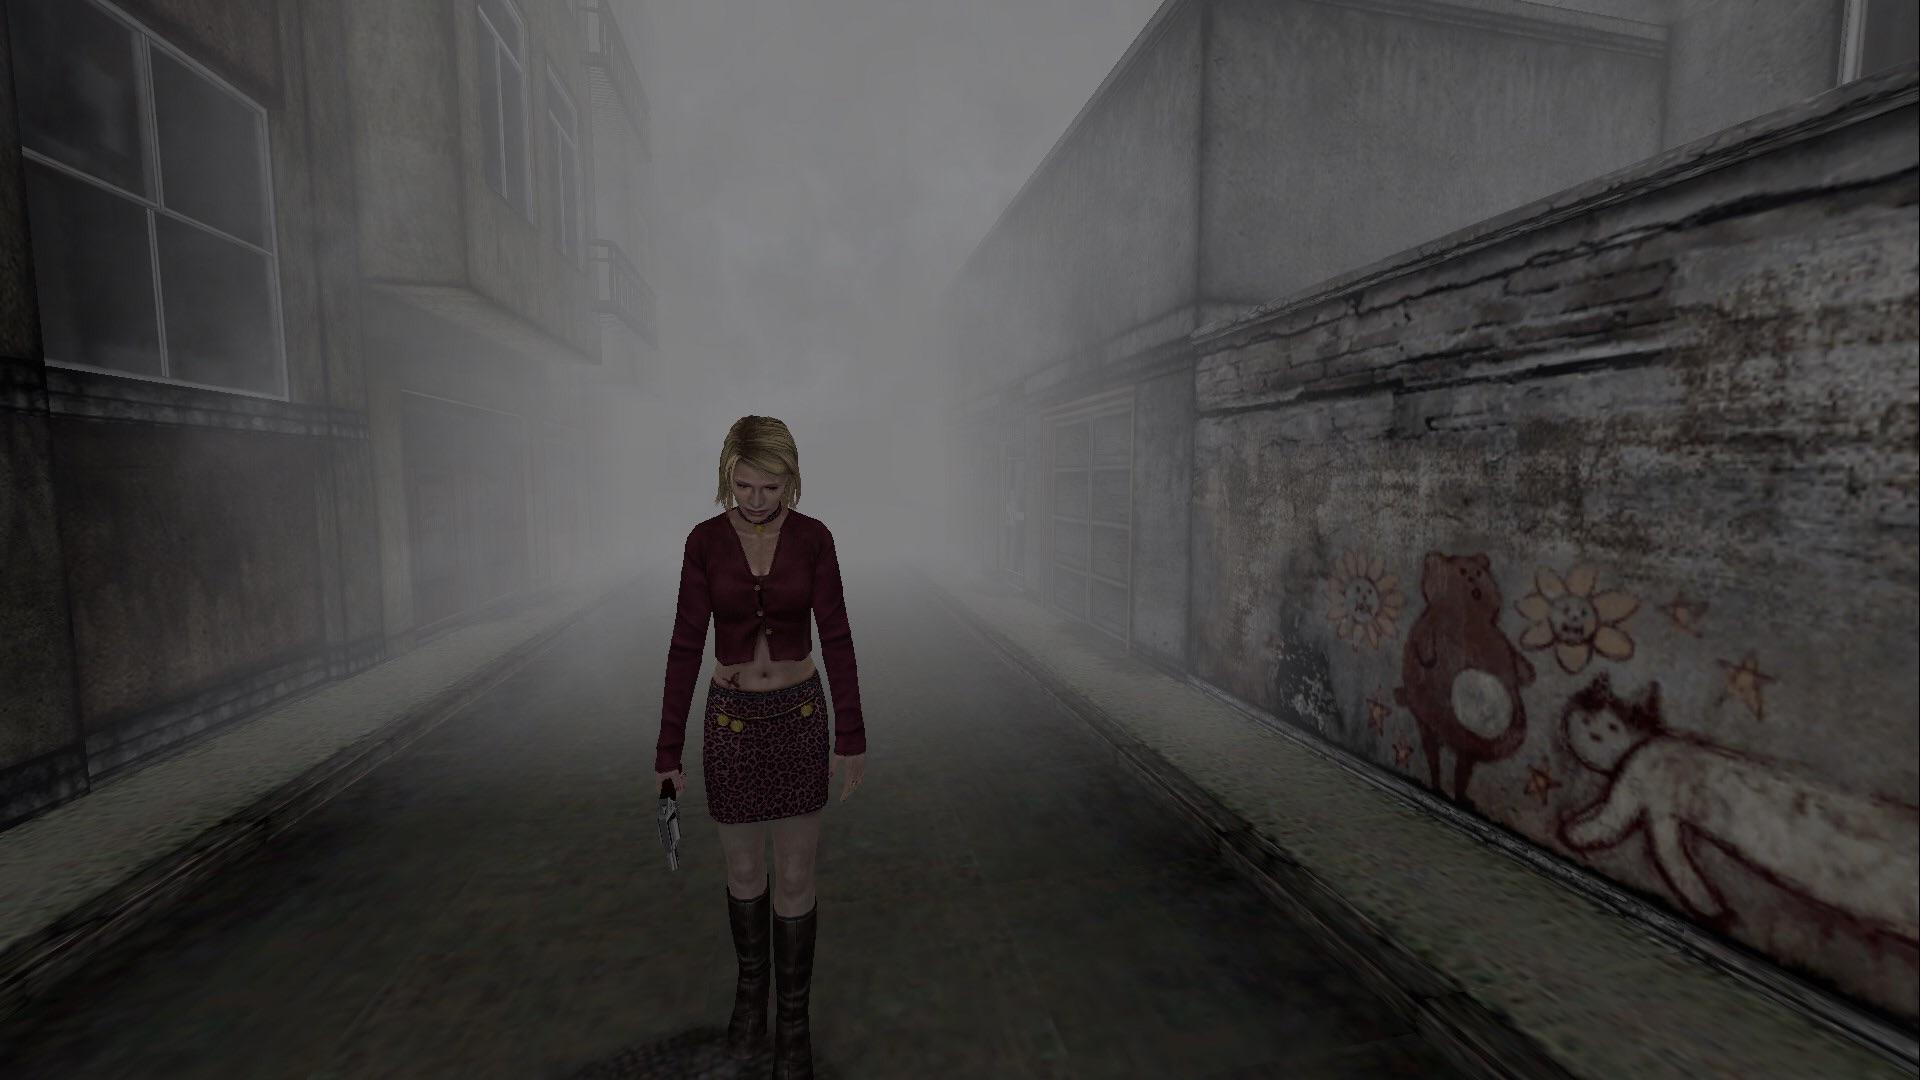 Silent Hill 2 Is Still A Haunting Masterpiece Of Personal Horrors